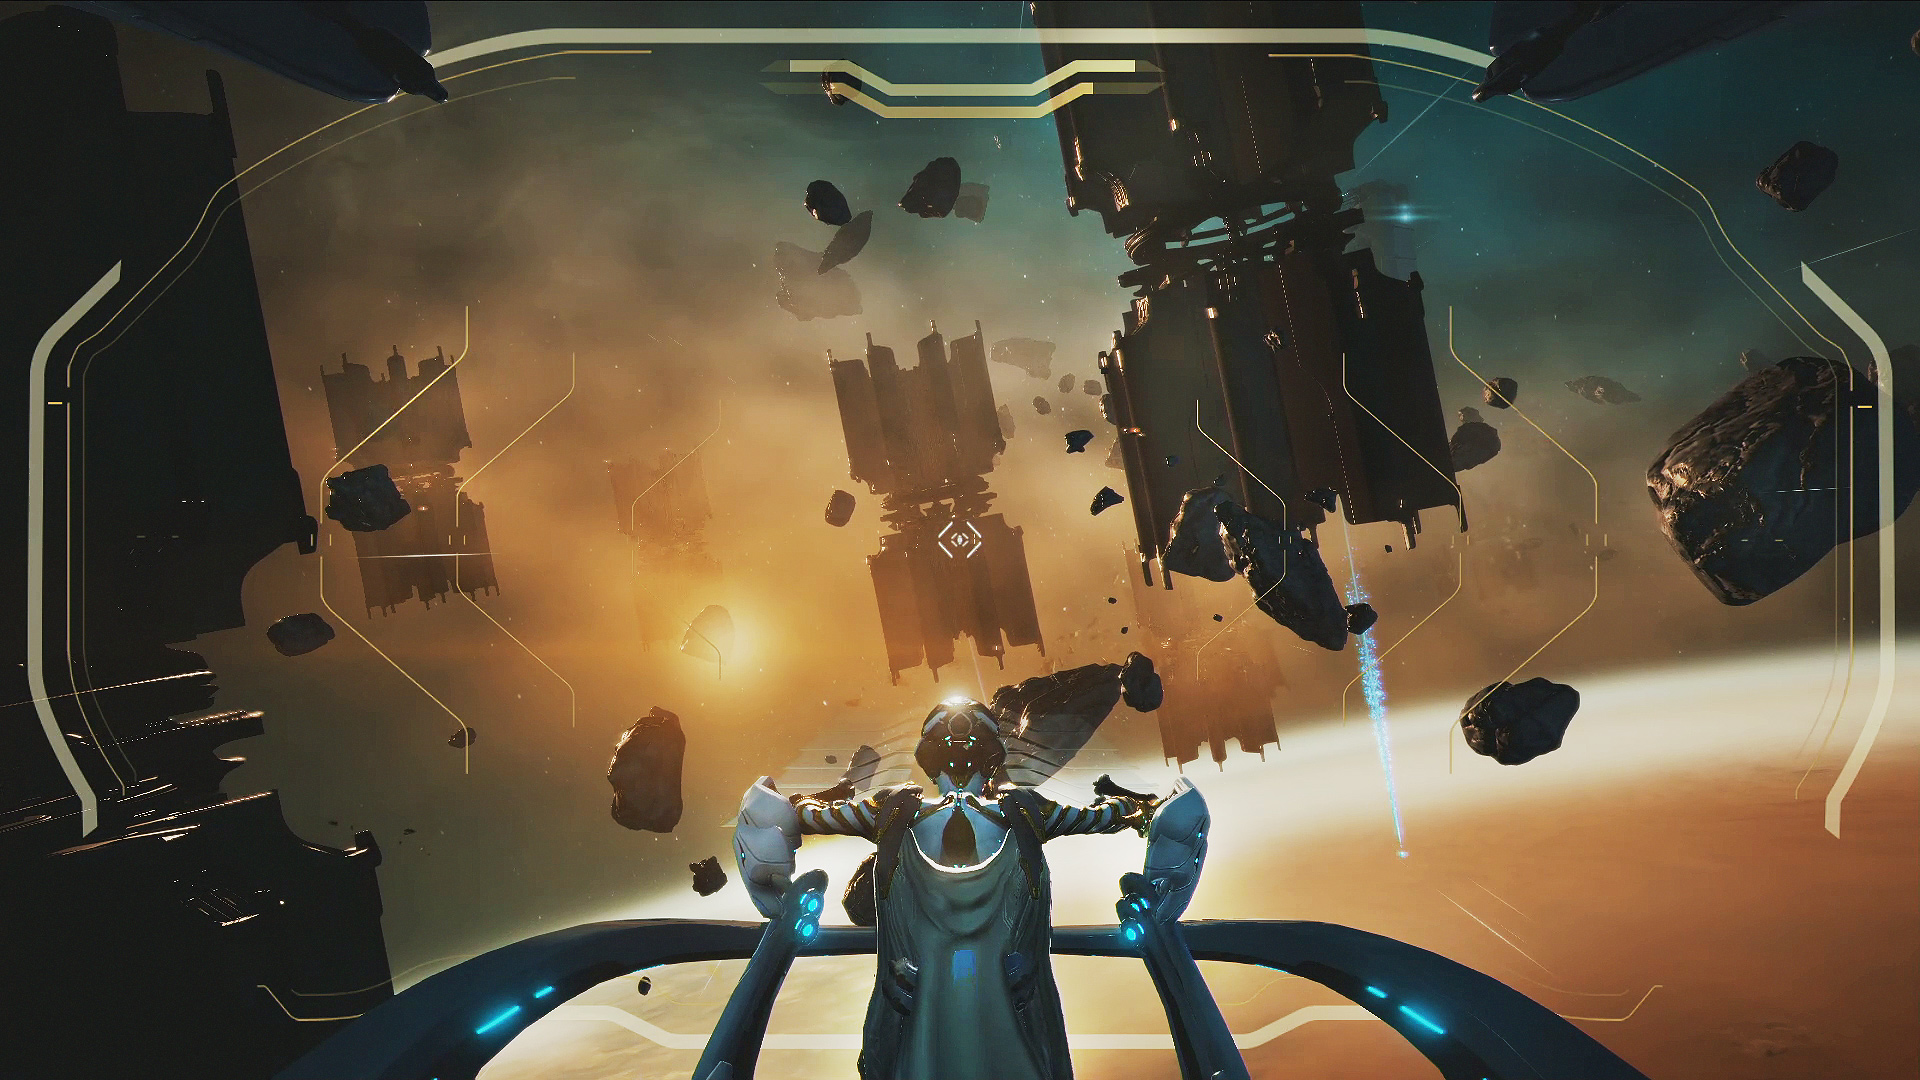 Warframe is getting co-op spaceship combat that looks like a third-person FTL | PC Gamer